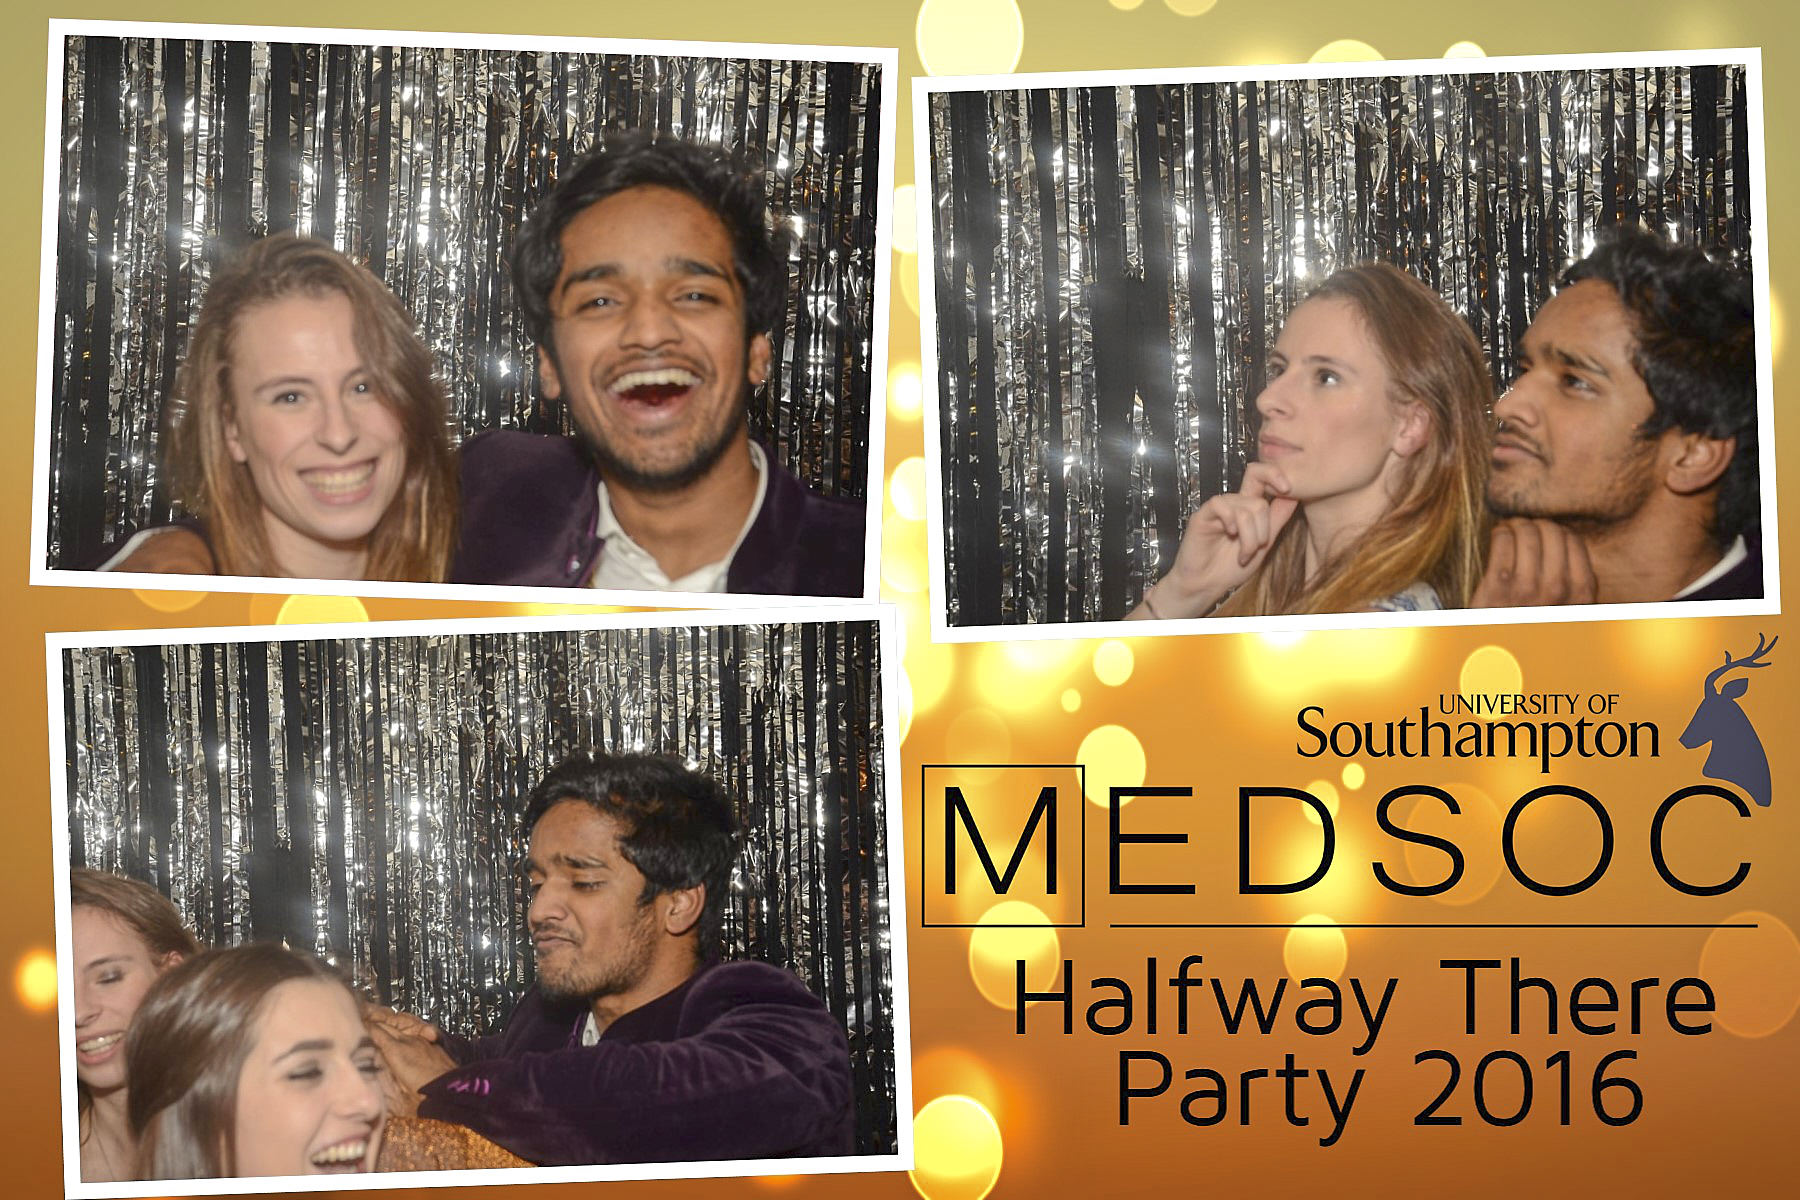 MedSoc Halfway There Party 2016 DS235837.jpg